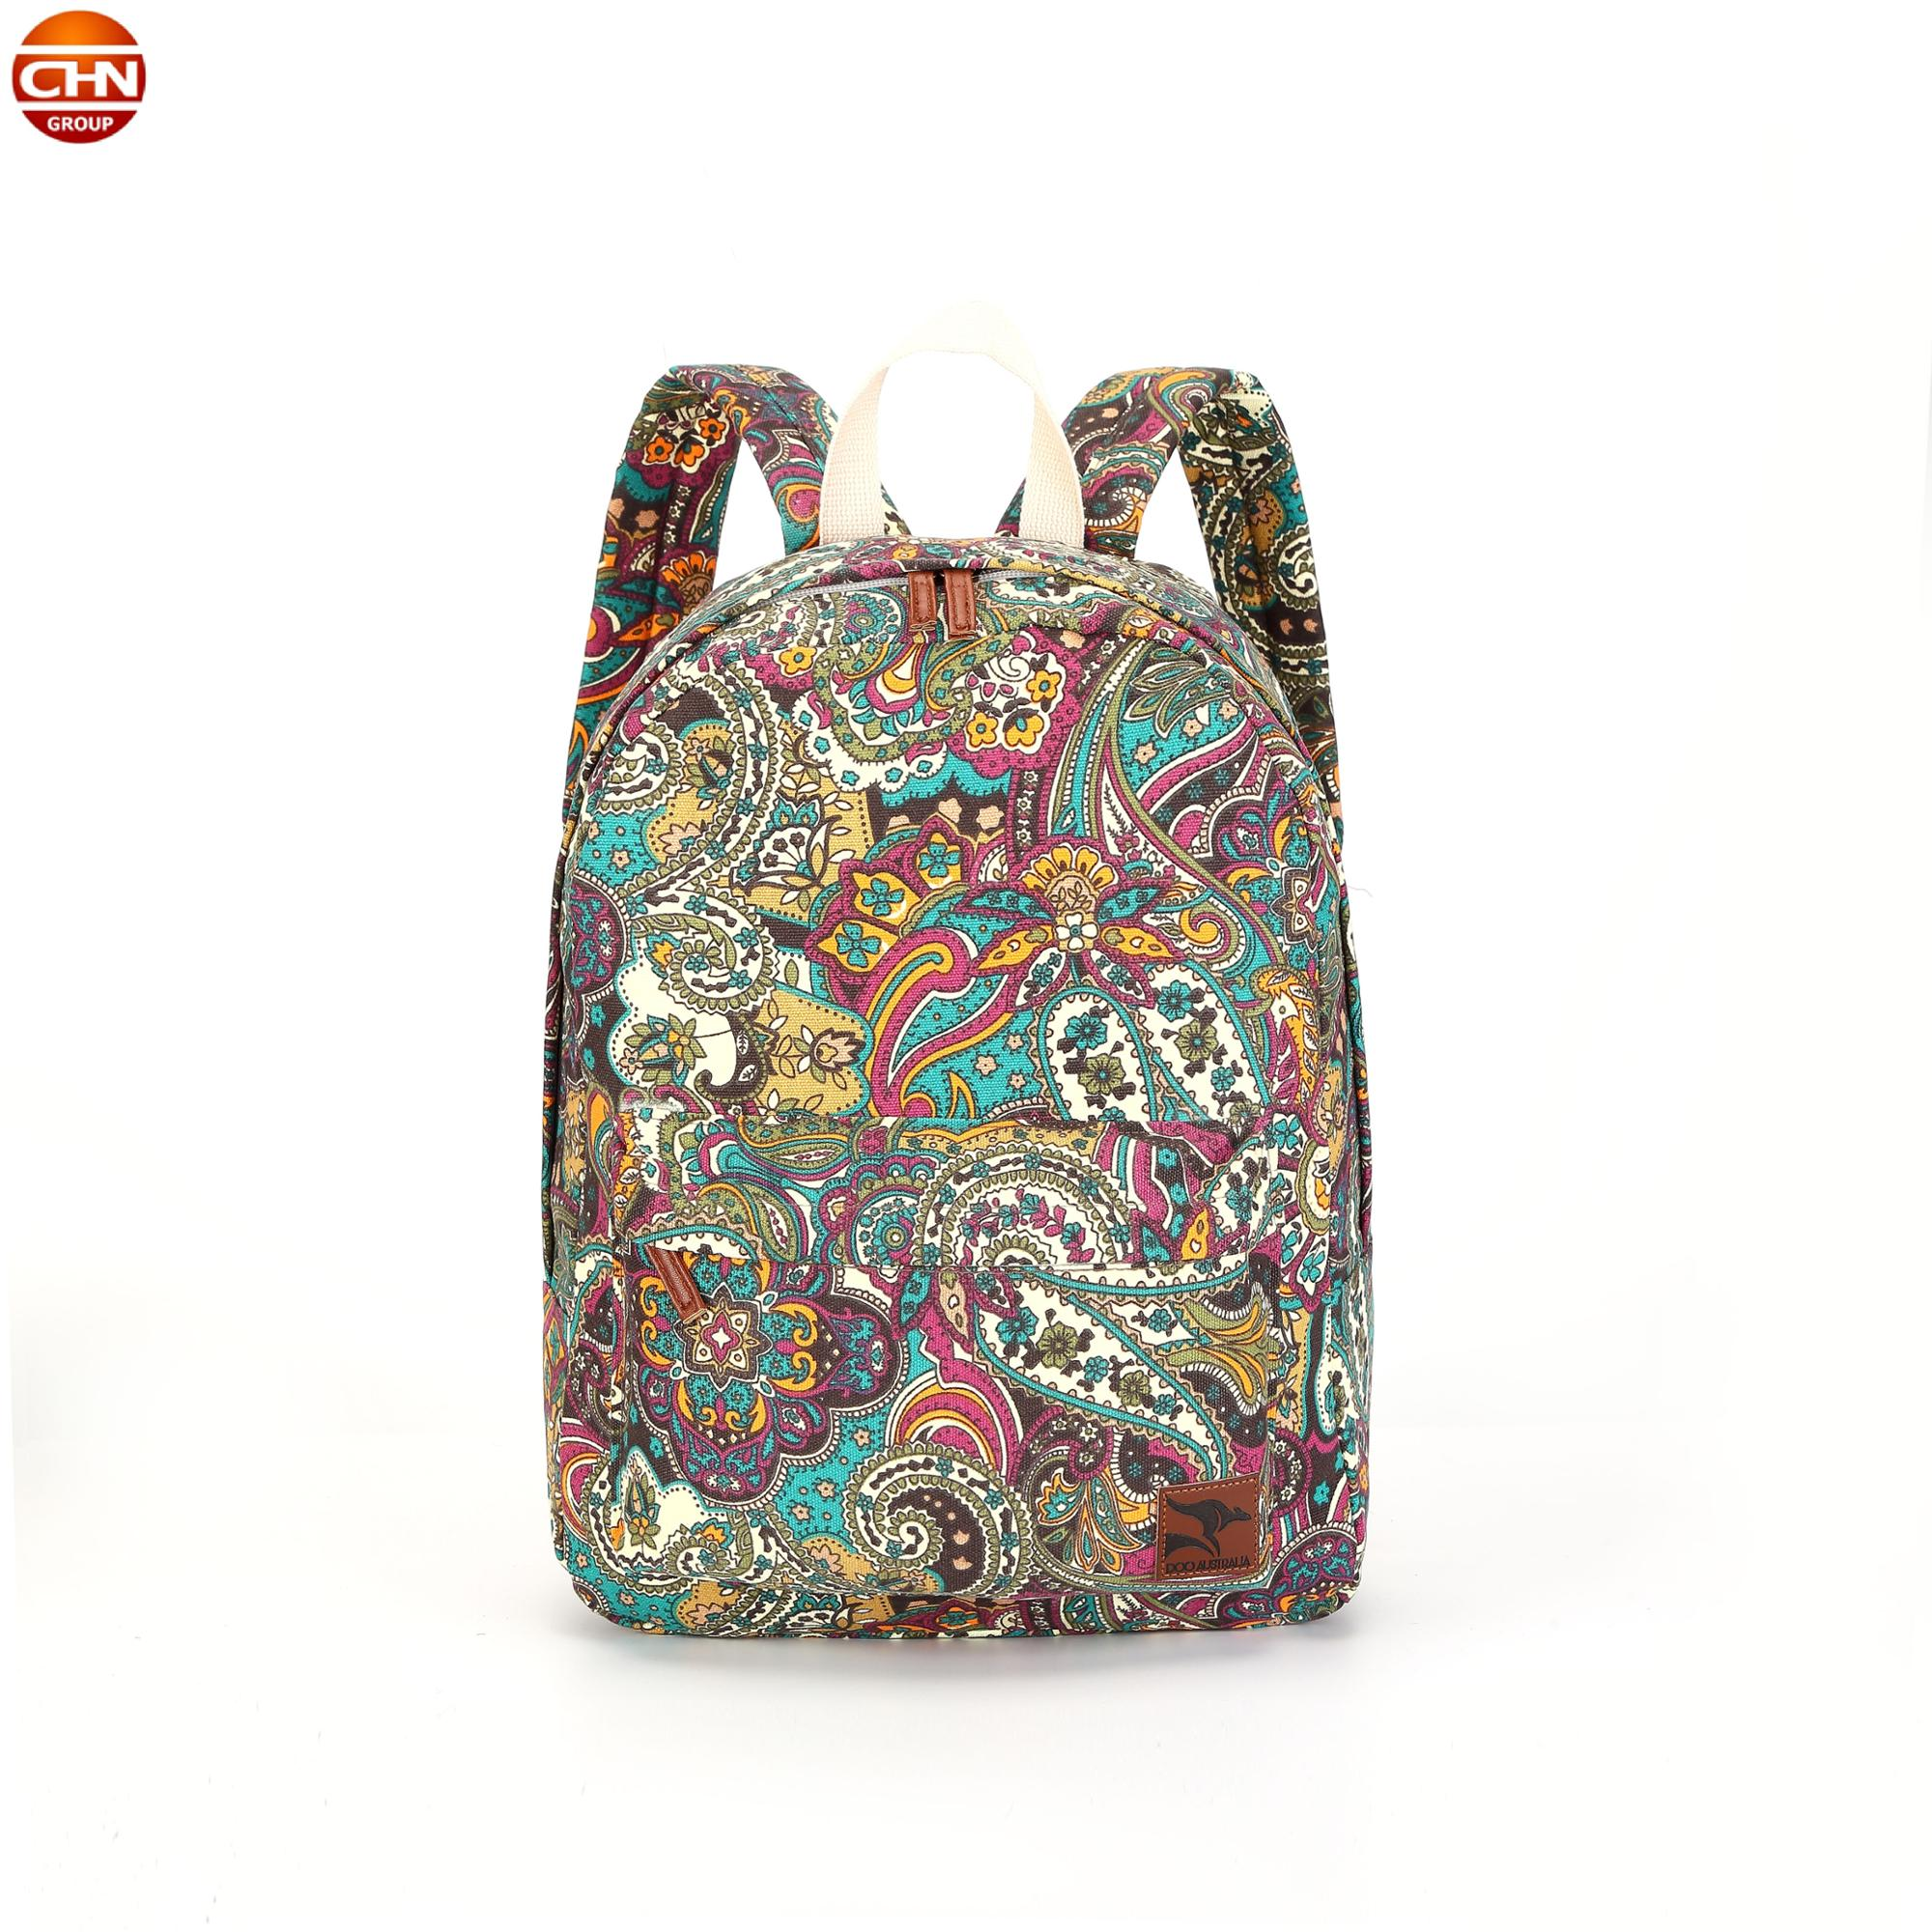 fashionable school backpack 2018 high school backpacks girls backpack